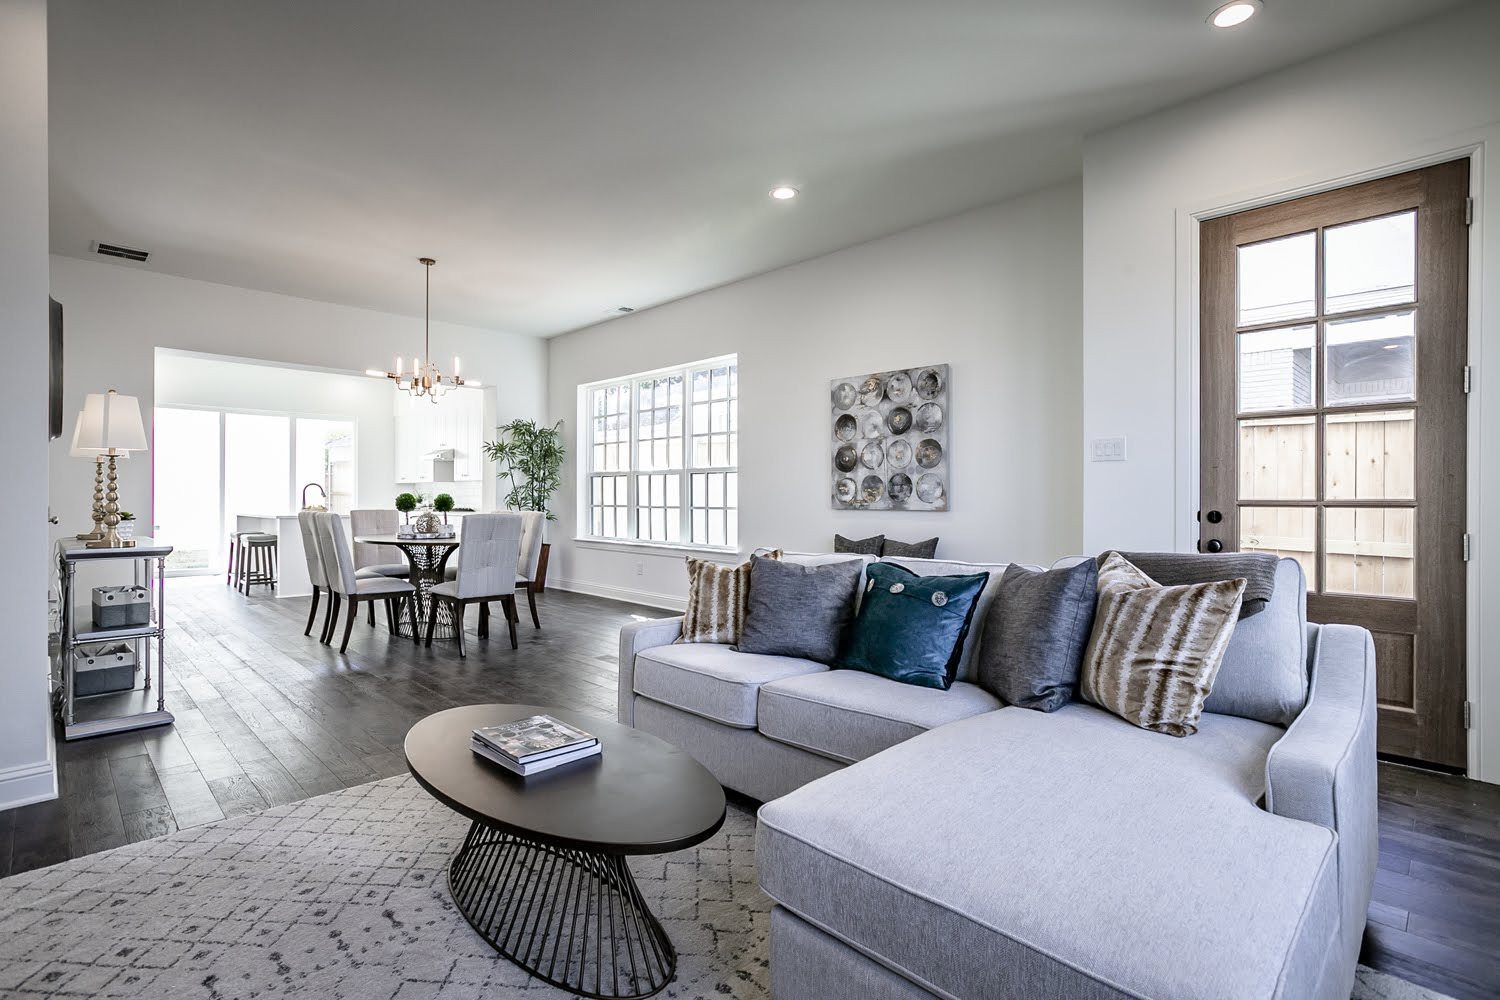 Living Room Design (Texas Homes): living and dining room with furniture and mahogany door